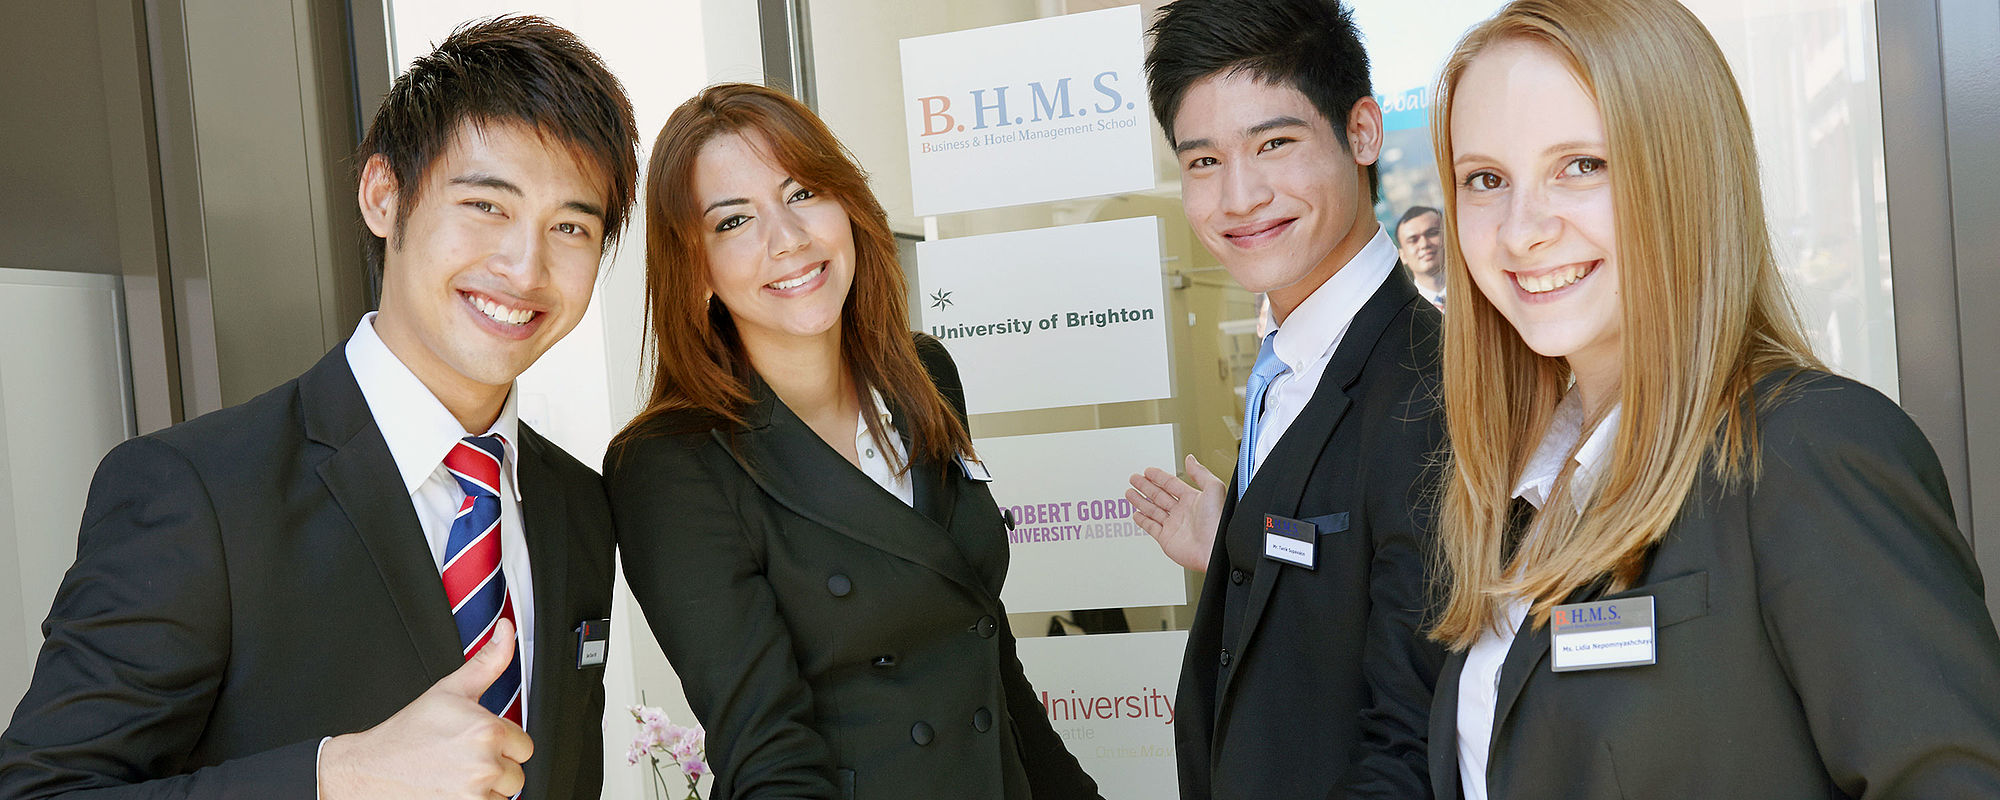 BHMS Business & Hotel Management School Lucerne